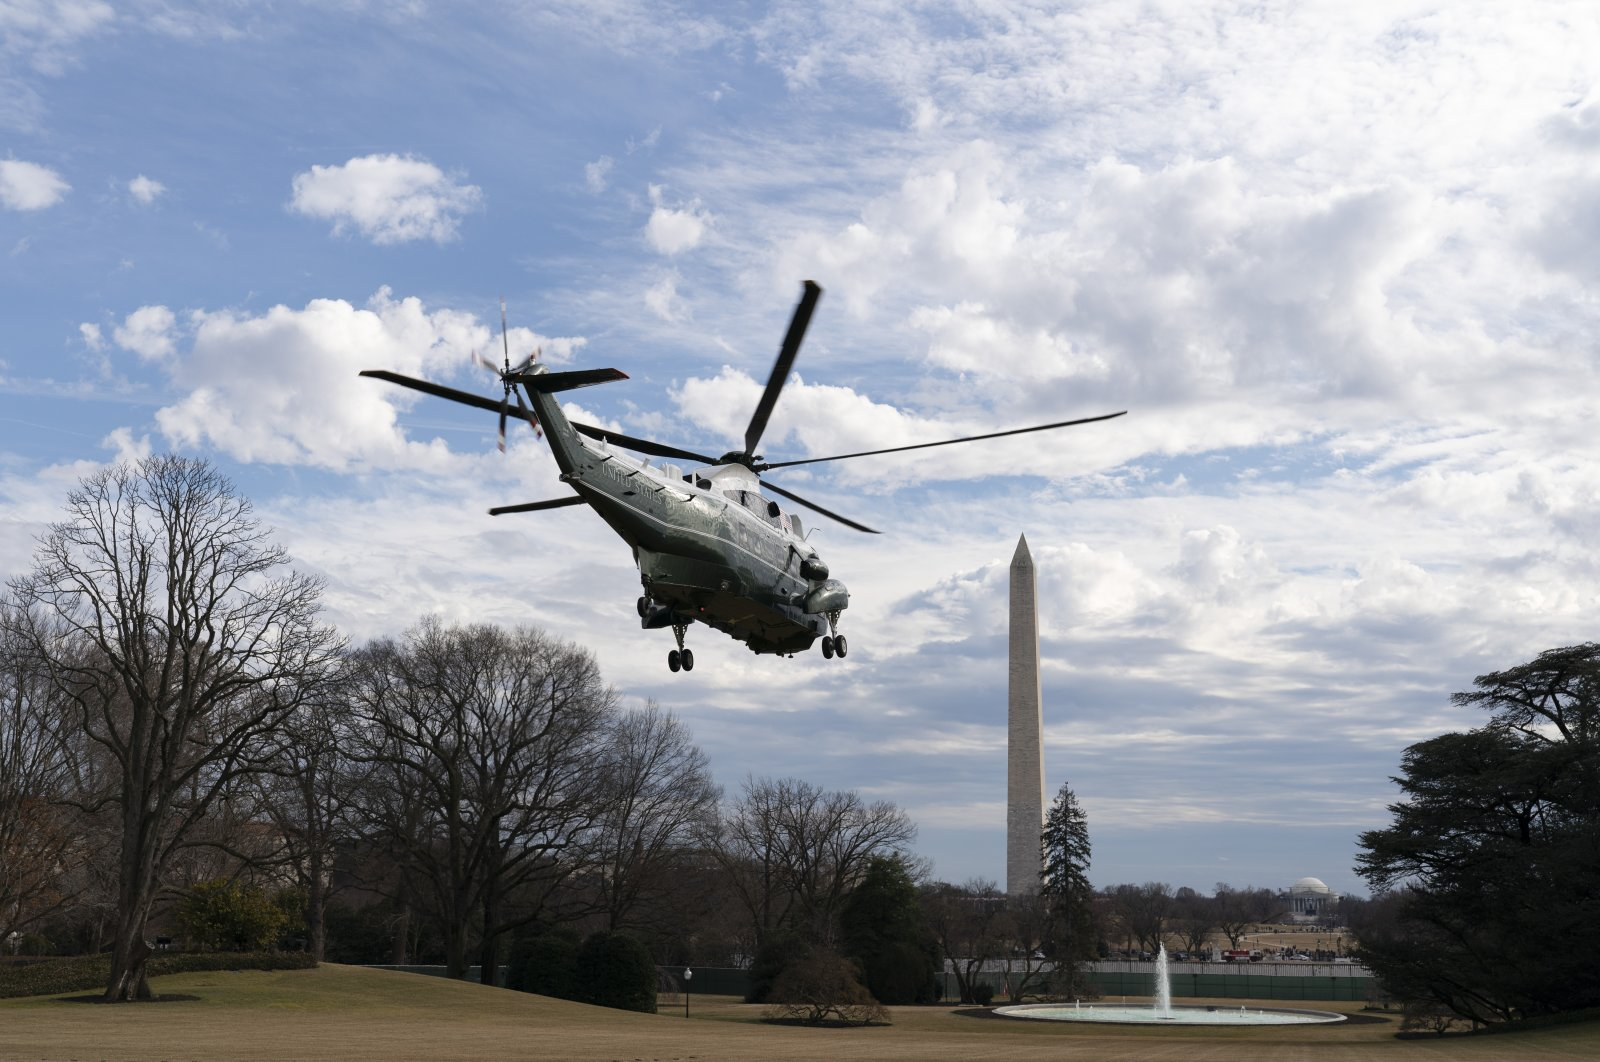 Marine One, carrying U.S. President Joe Biden and first lady Jill Biden, takes off from the White House, Washington, D.C., U.S., Feb. 27, 2021. (Photo by Getty Images)